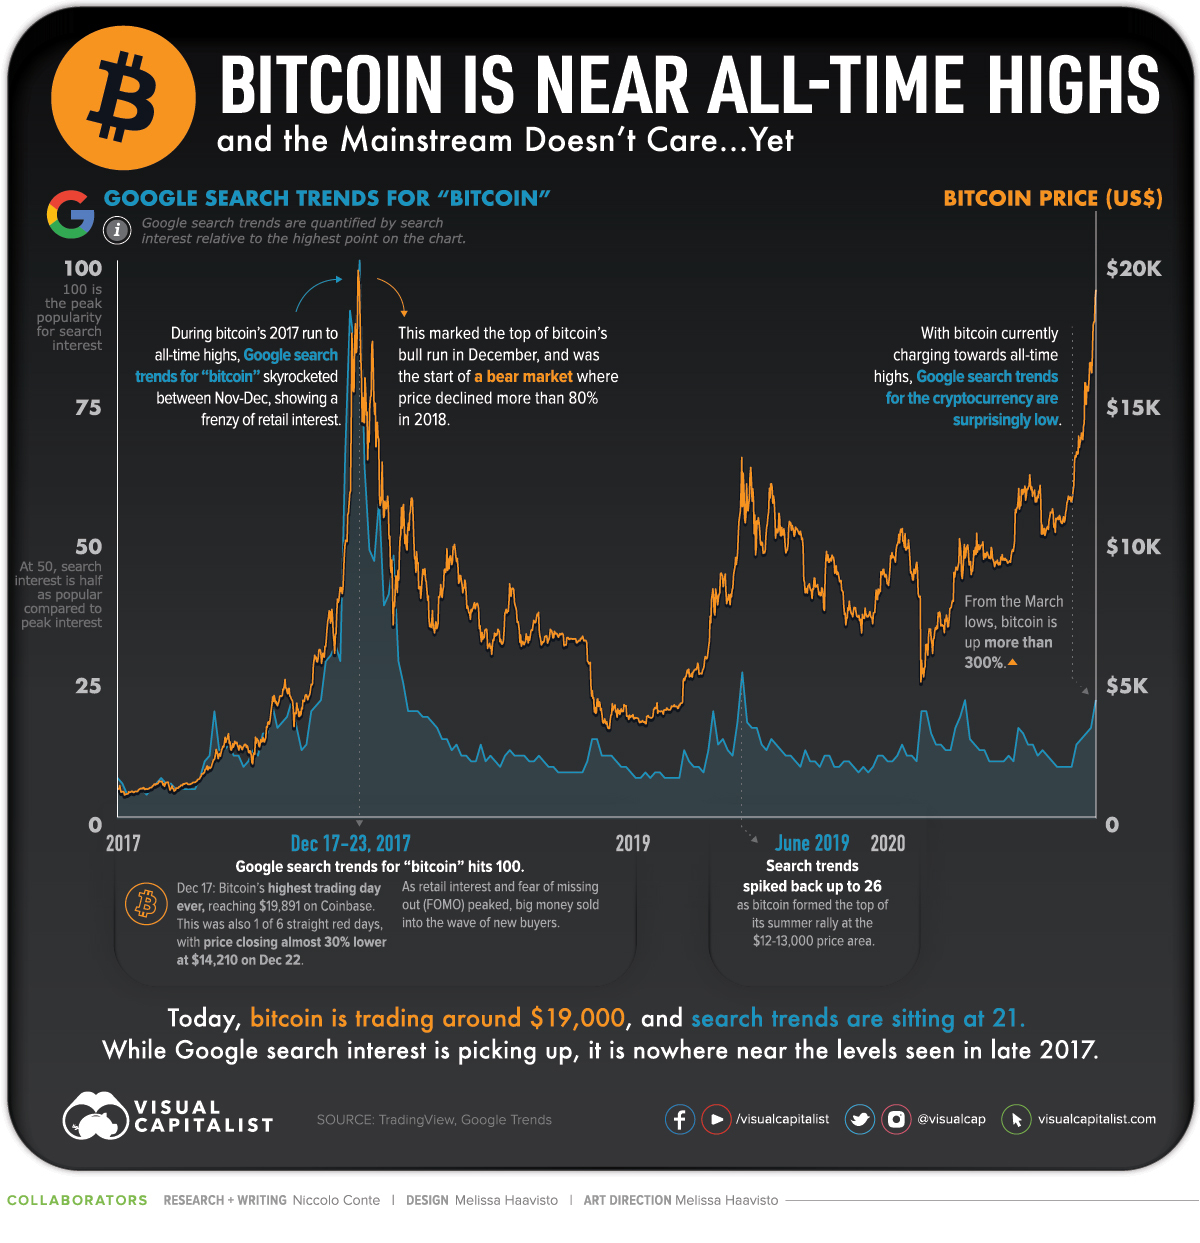 bitcoin price all time highs vs search interest